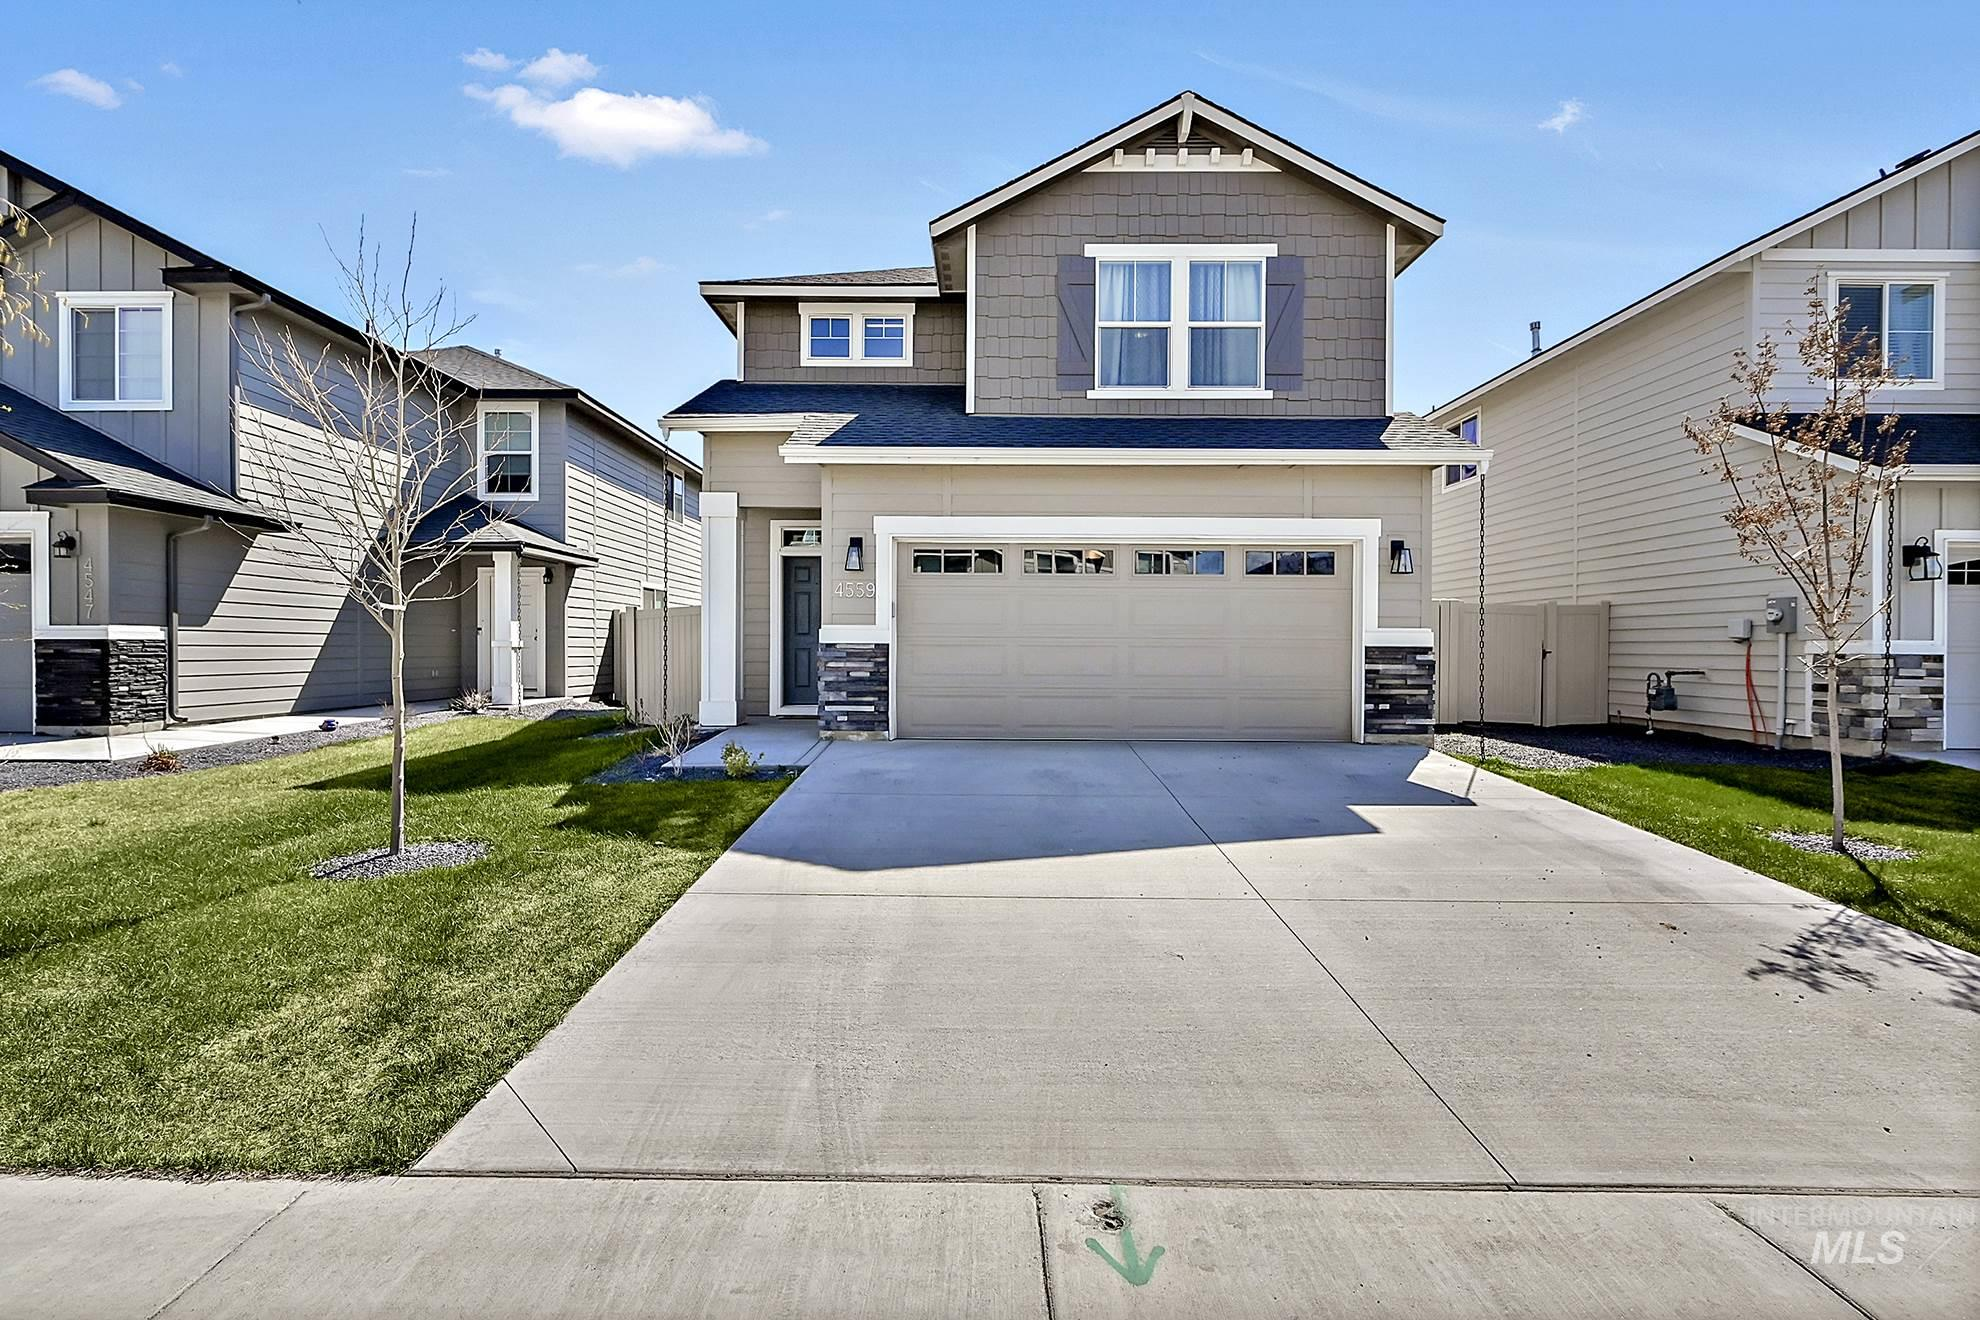 4559 W Silver River St Property Photo - Meridian, ID real estate listing